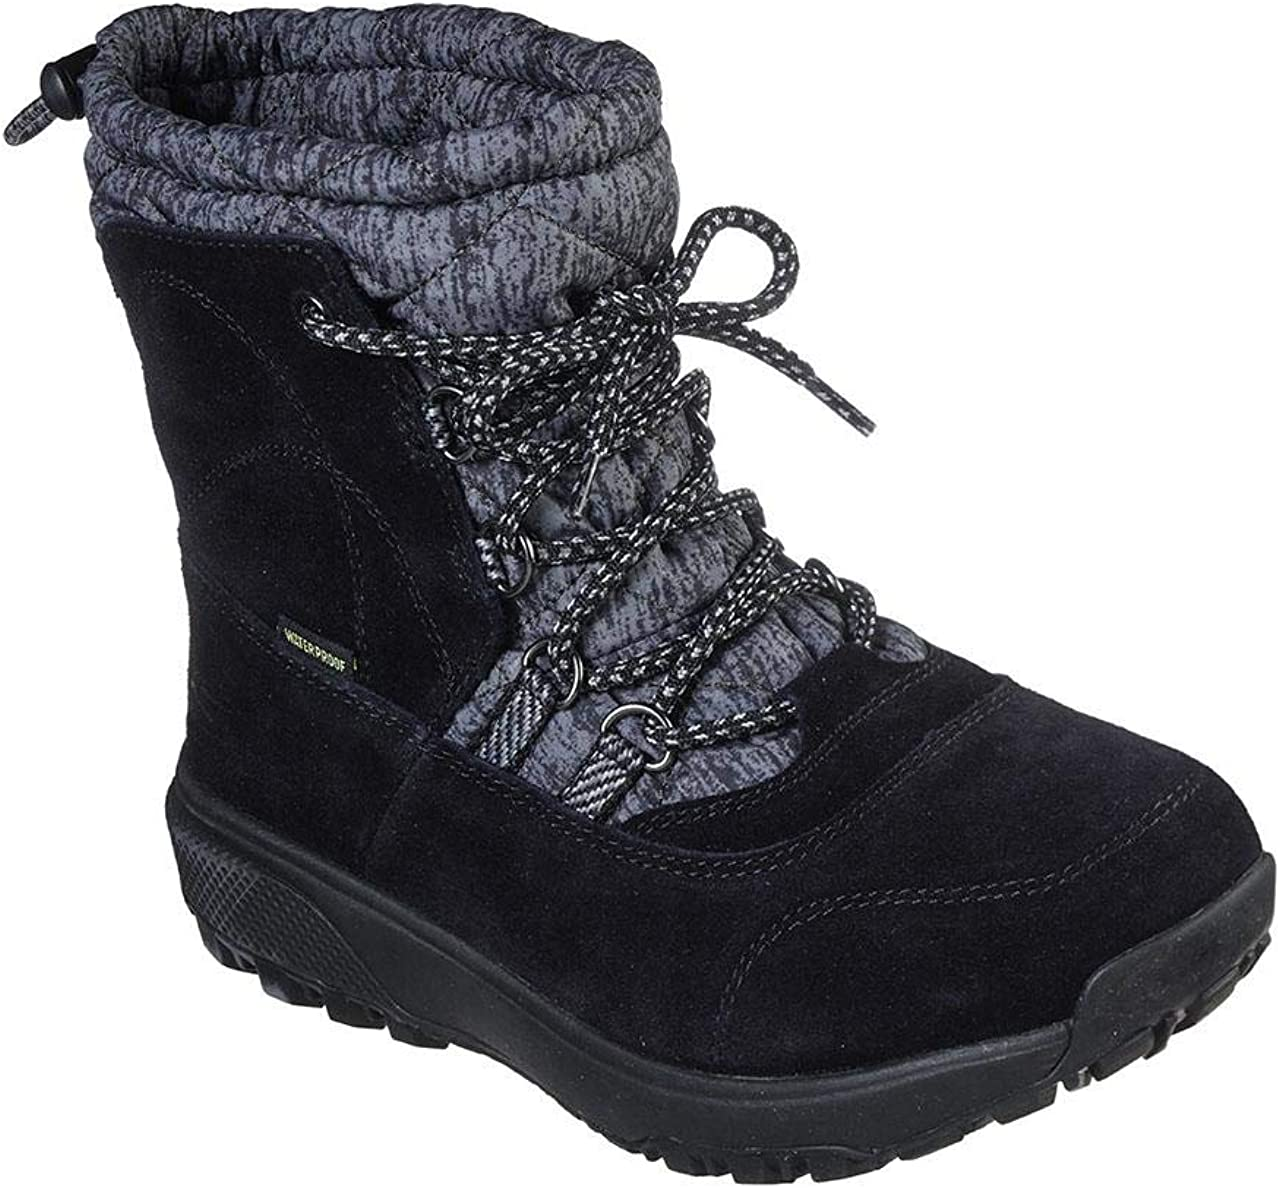 Skechers On The Go Outdoors Ultra - Stivali da donna a metà polpaccio Nero Grigio